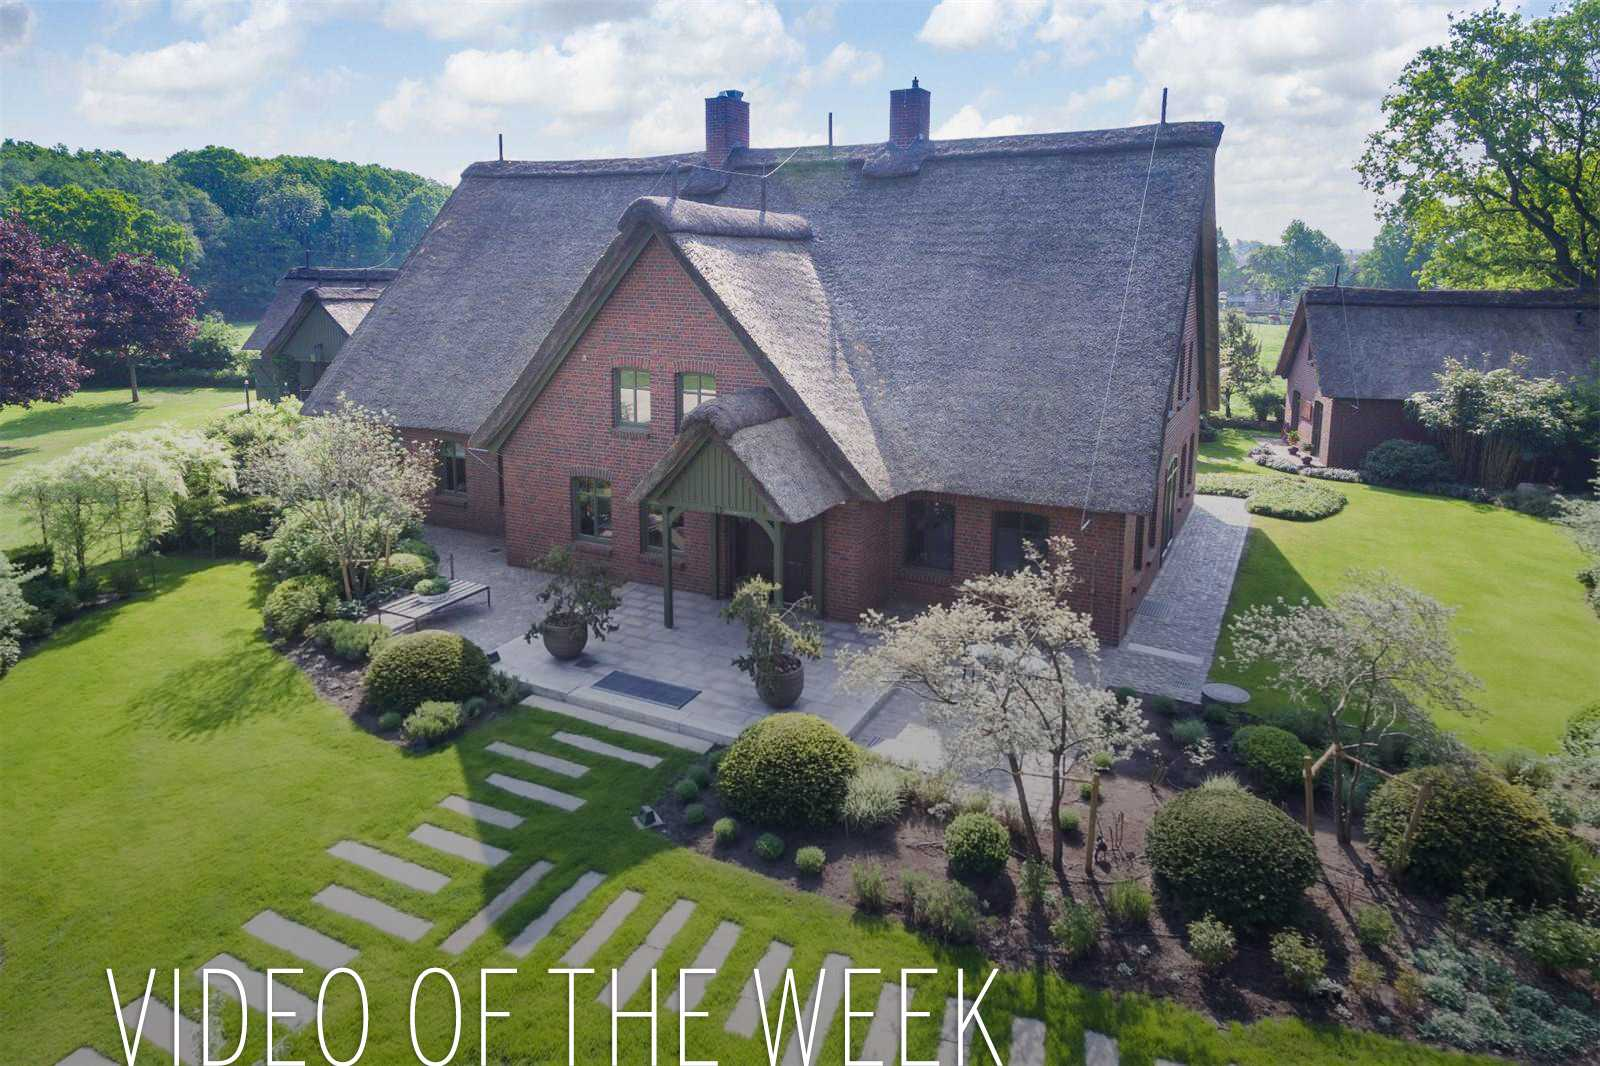 Video of the Week: Sprawling Equestrian Estate in Lower Saxony, Germany